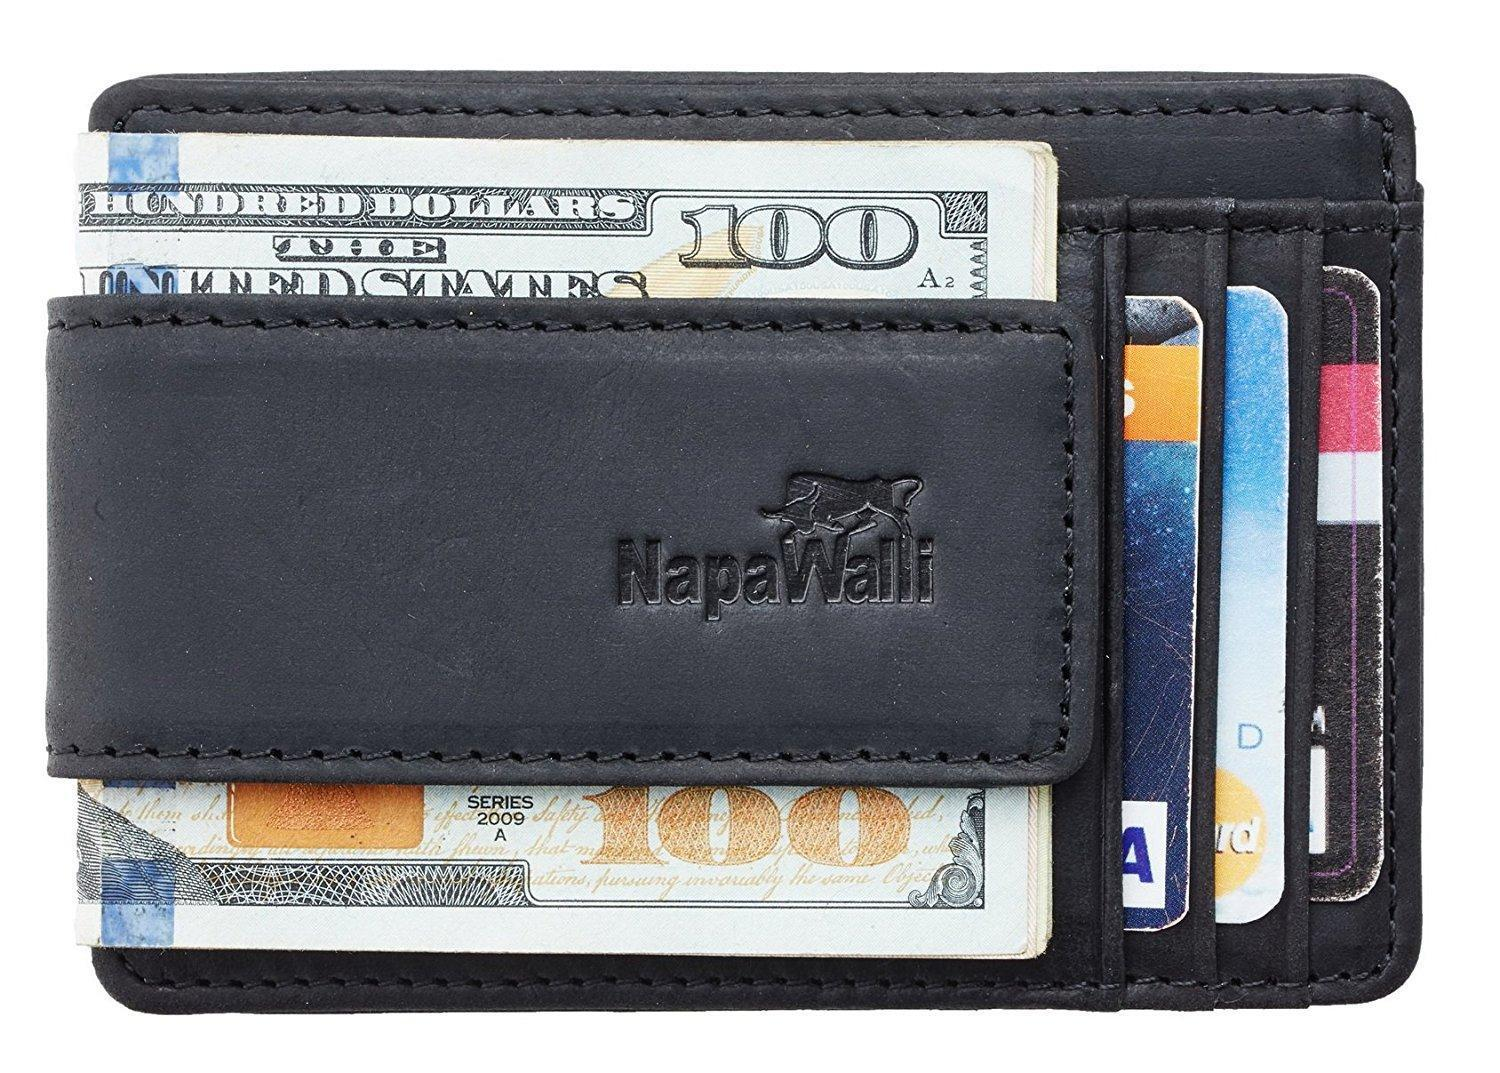 NapaWalli Magnetic Leather Money Clip Wallet